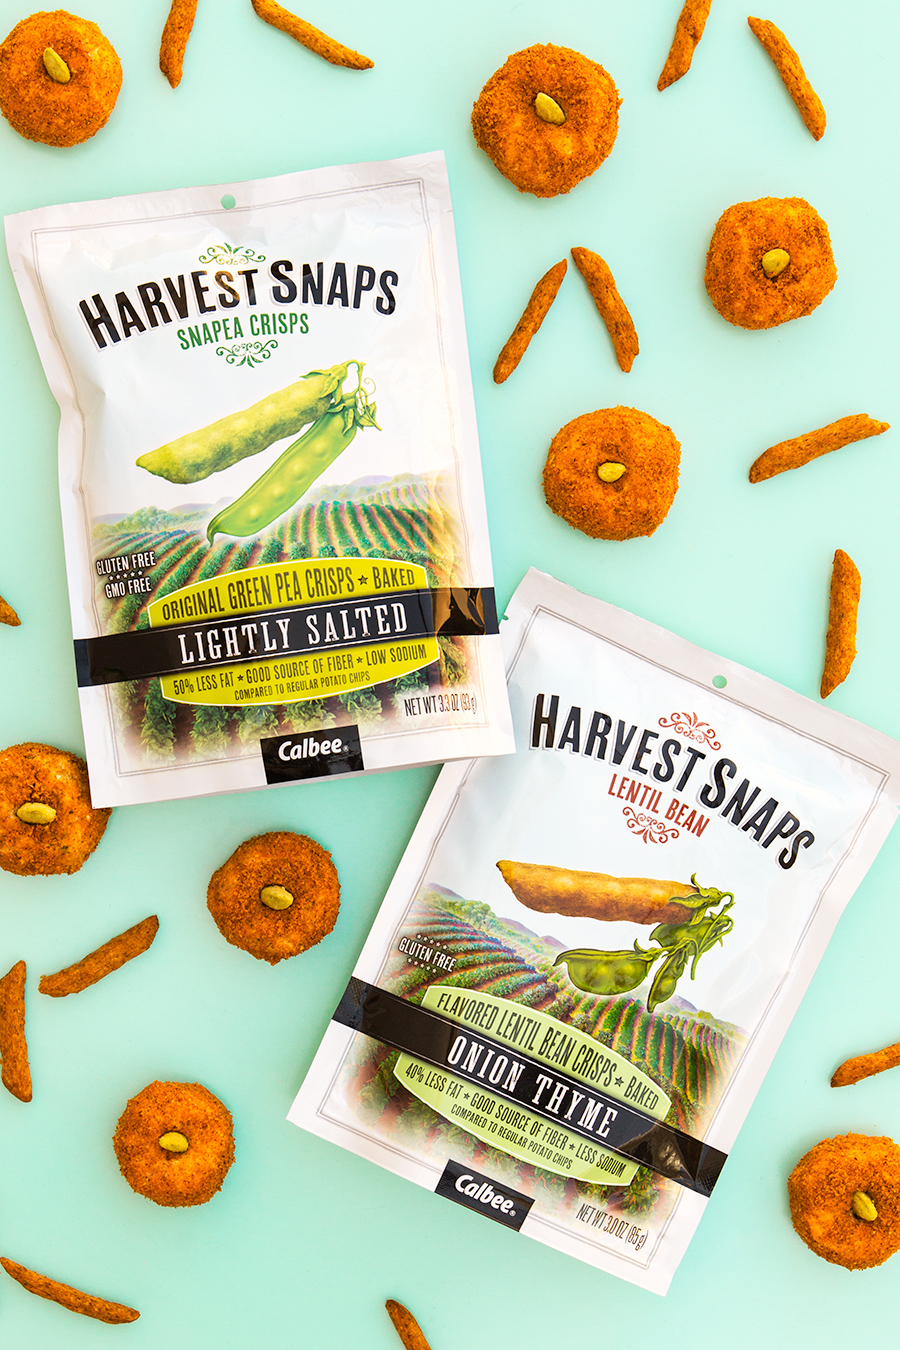 These mini cheese balls are shaped like pumpkins and perfect for Halloween parties and Thanksgiving dinners! Made with @HarvestSnaps. #harvestsnapslove